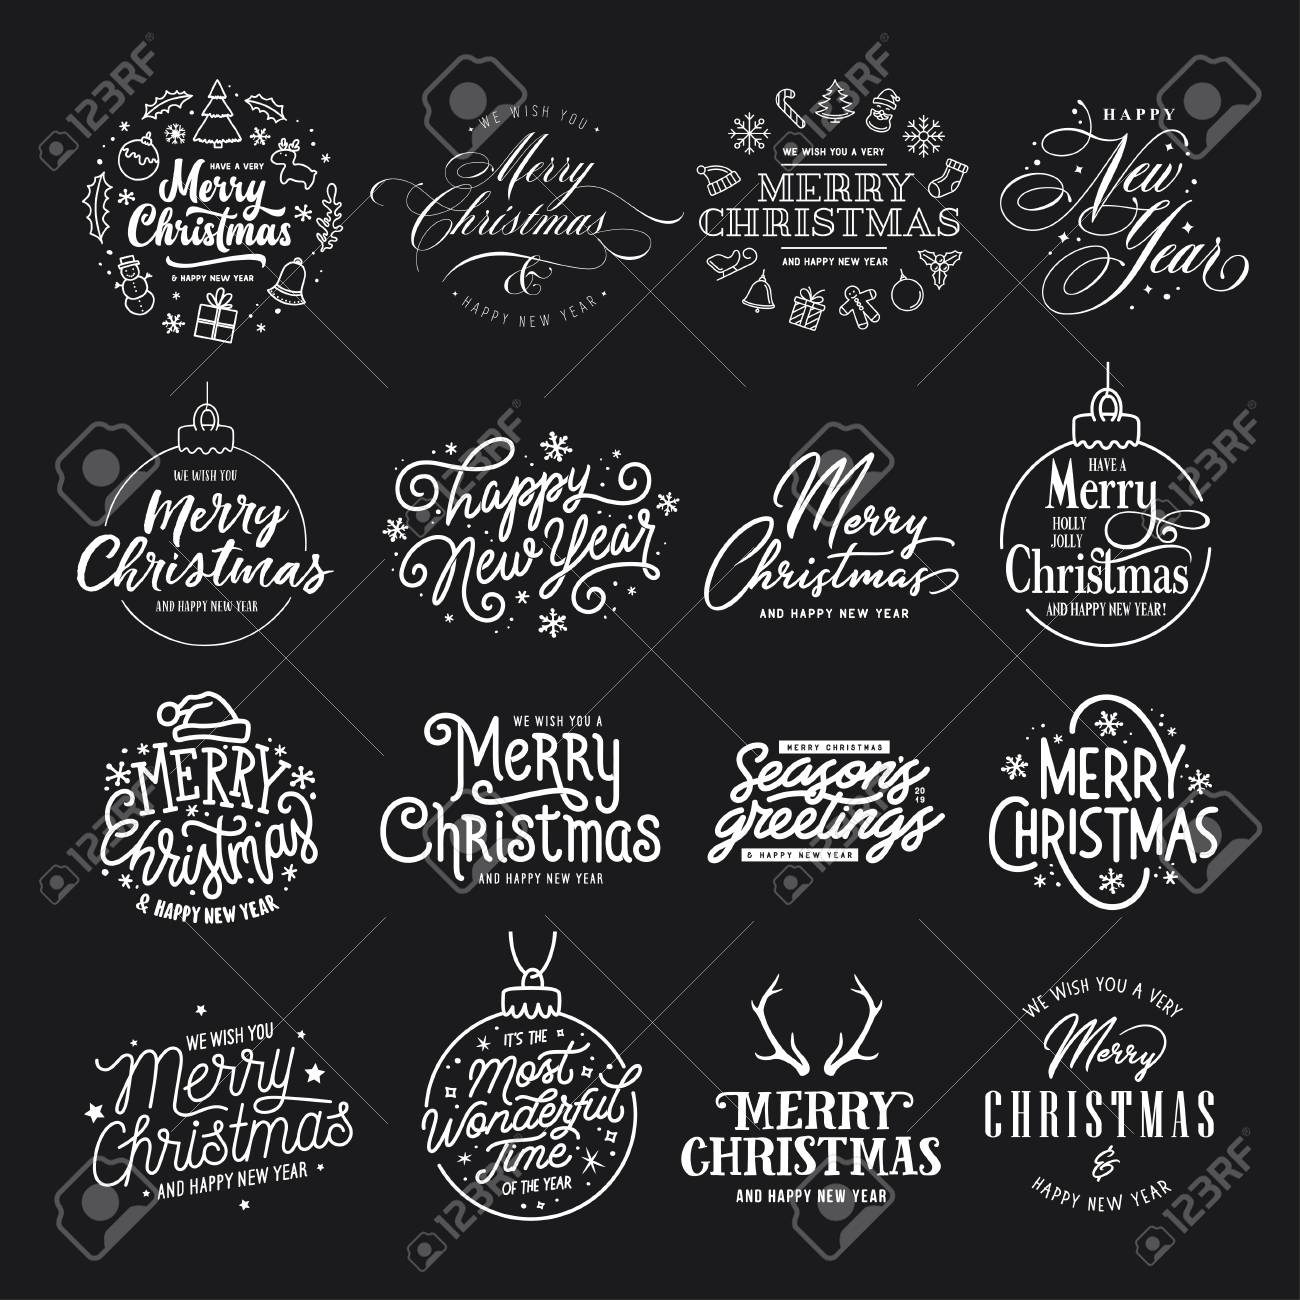 Merry Christmas and Happy New Year typography set. Vector vintage illustration. - 109249430